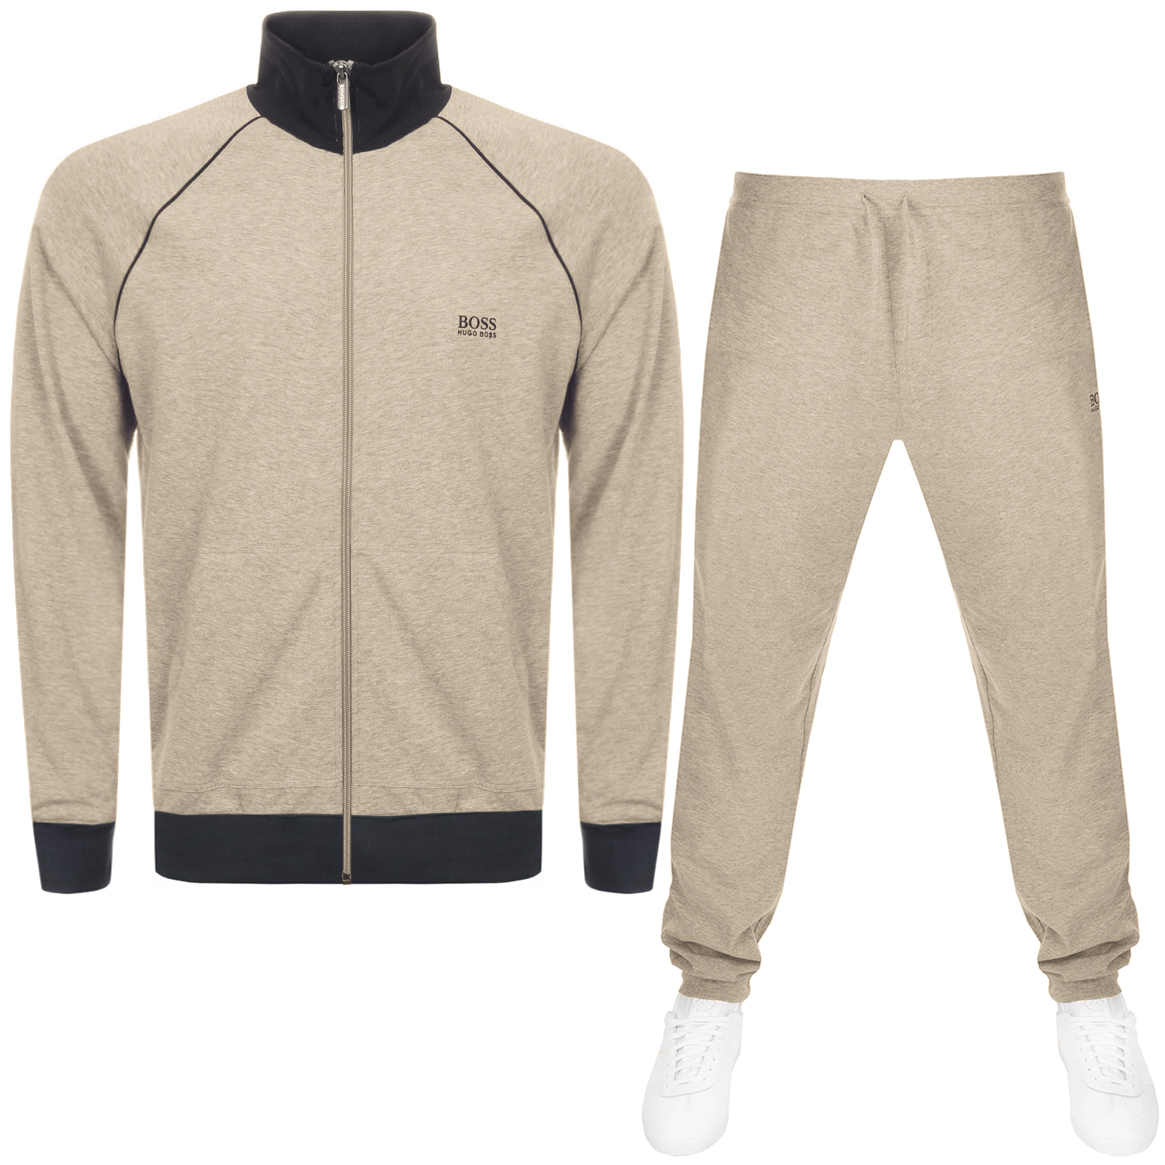 479818e1 Clothing, Shoes & Accessories NEW HUGO BOSS MENS BLUE SPORTS JUMPER  TRACKSUIT COAT JACKET TRACK SUIT ...